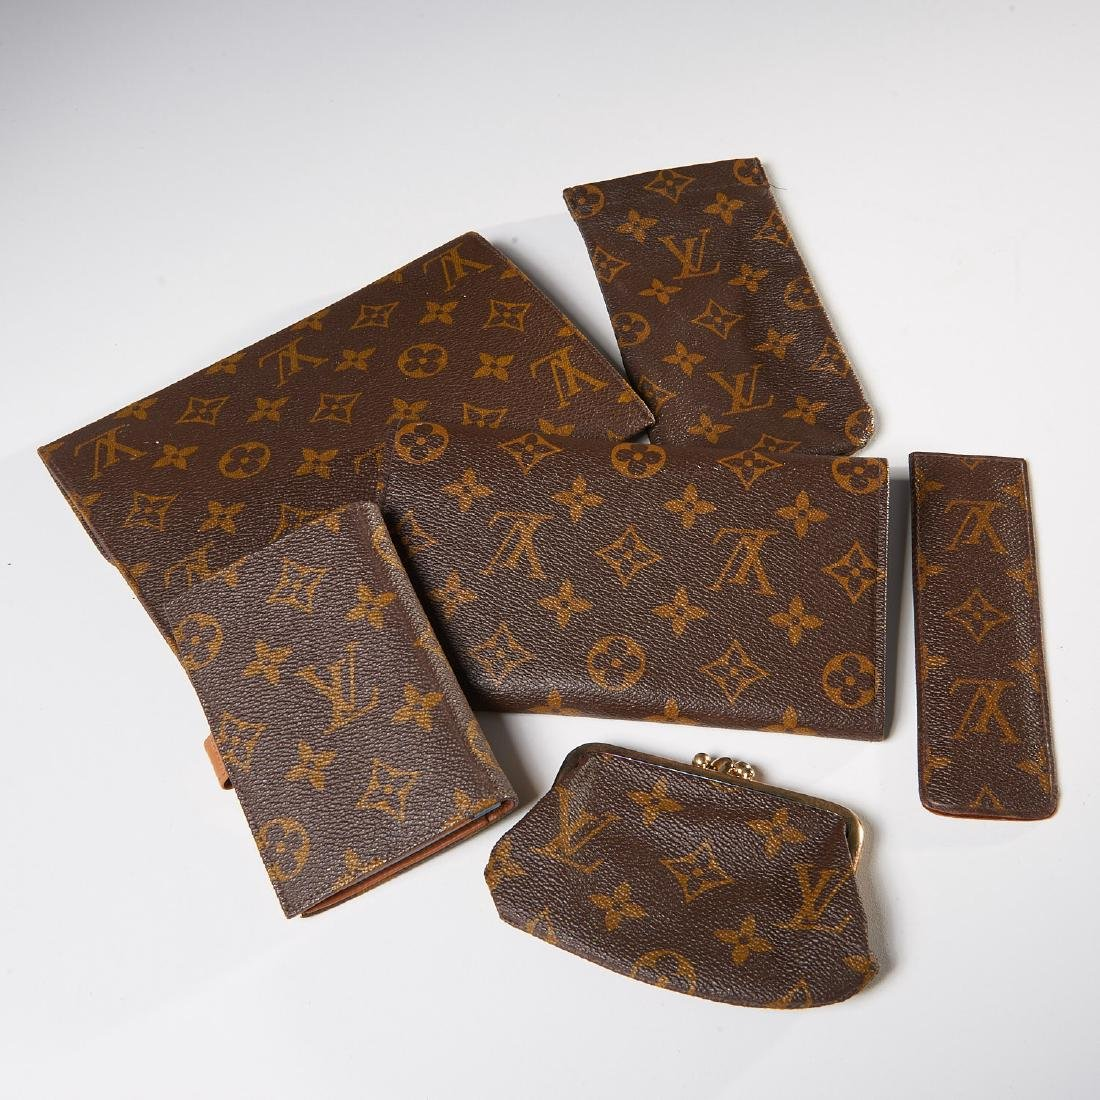 Group of Louis Vuitton Monogram accessories - 6